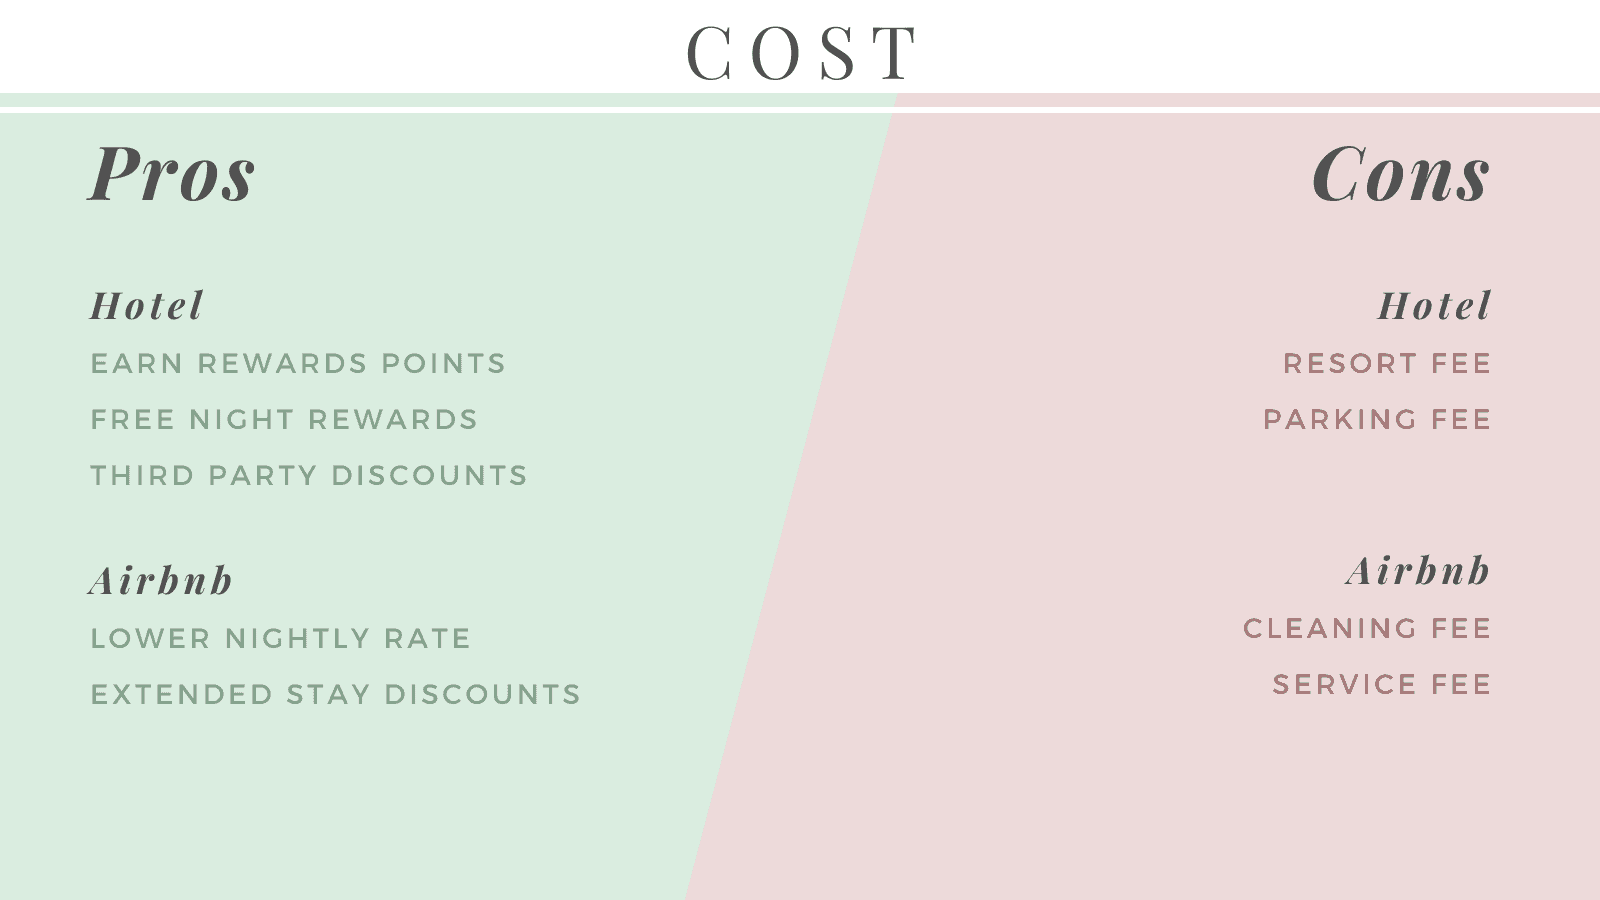 Hotel vs Airbnb Cost Pros and Cons